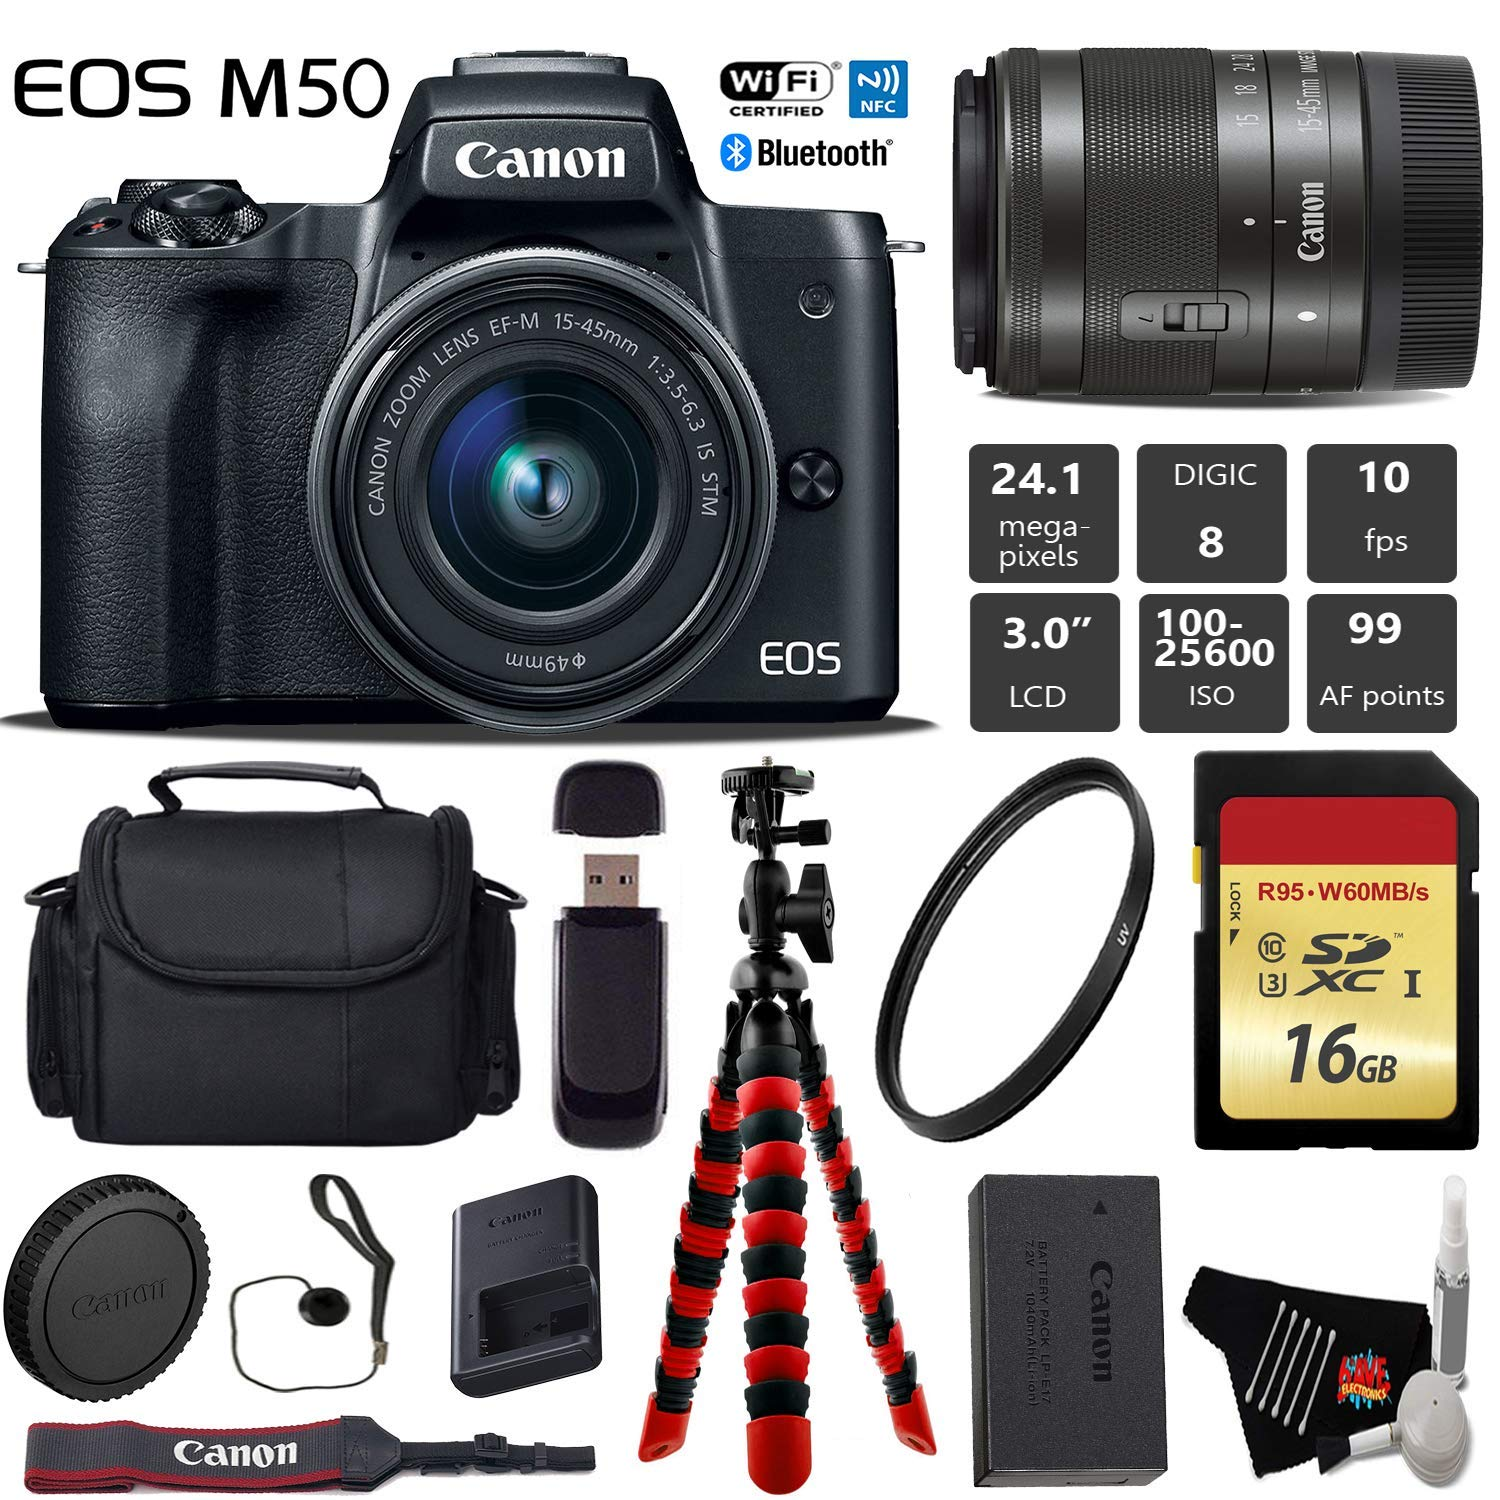 Canon EOS M50 Mirrorless Digital Camera with 15-45mm Lens + Flexible Tripod + UV Protection Filter + Professional Case + Card Reader - International Version Kit by Canon